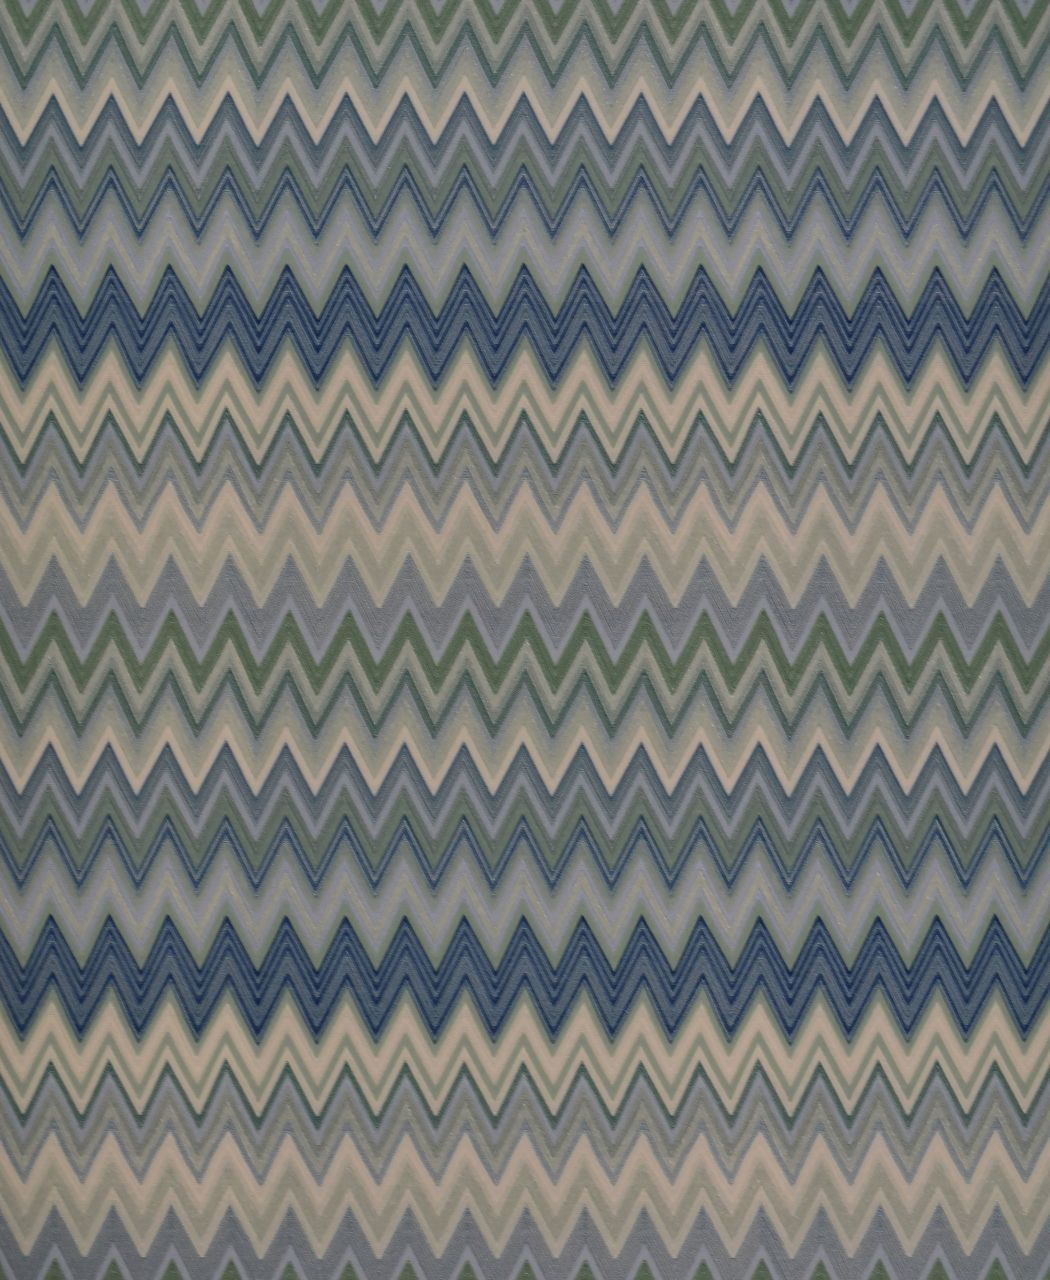 a5b7ec505048 York Wallcoverings MI10063 Missoni Home Zig Zag Multicolore Wallpaper -  Cream Mint Green Navy - The Savvy Decorator